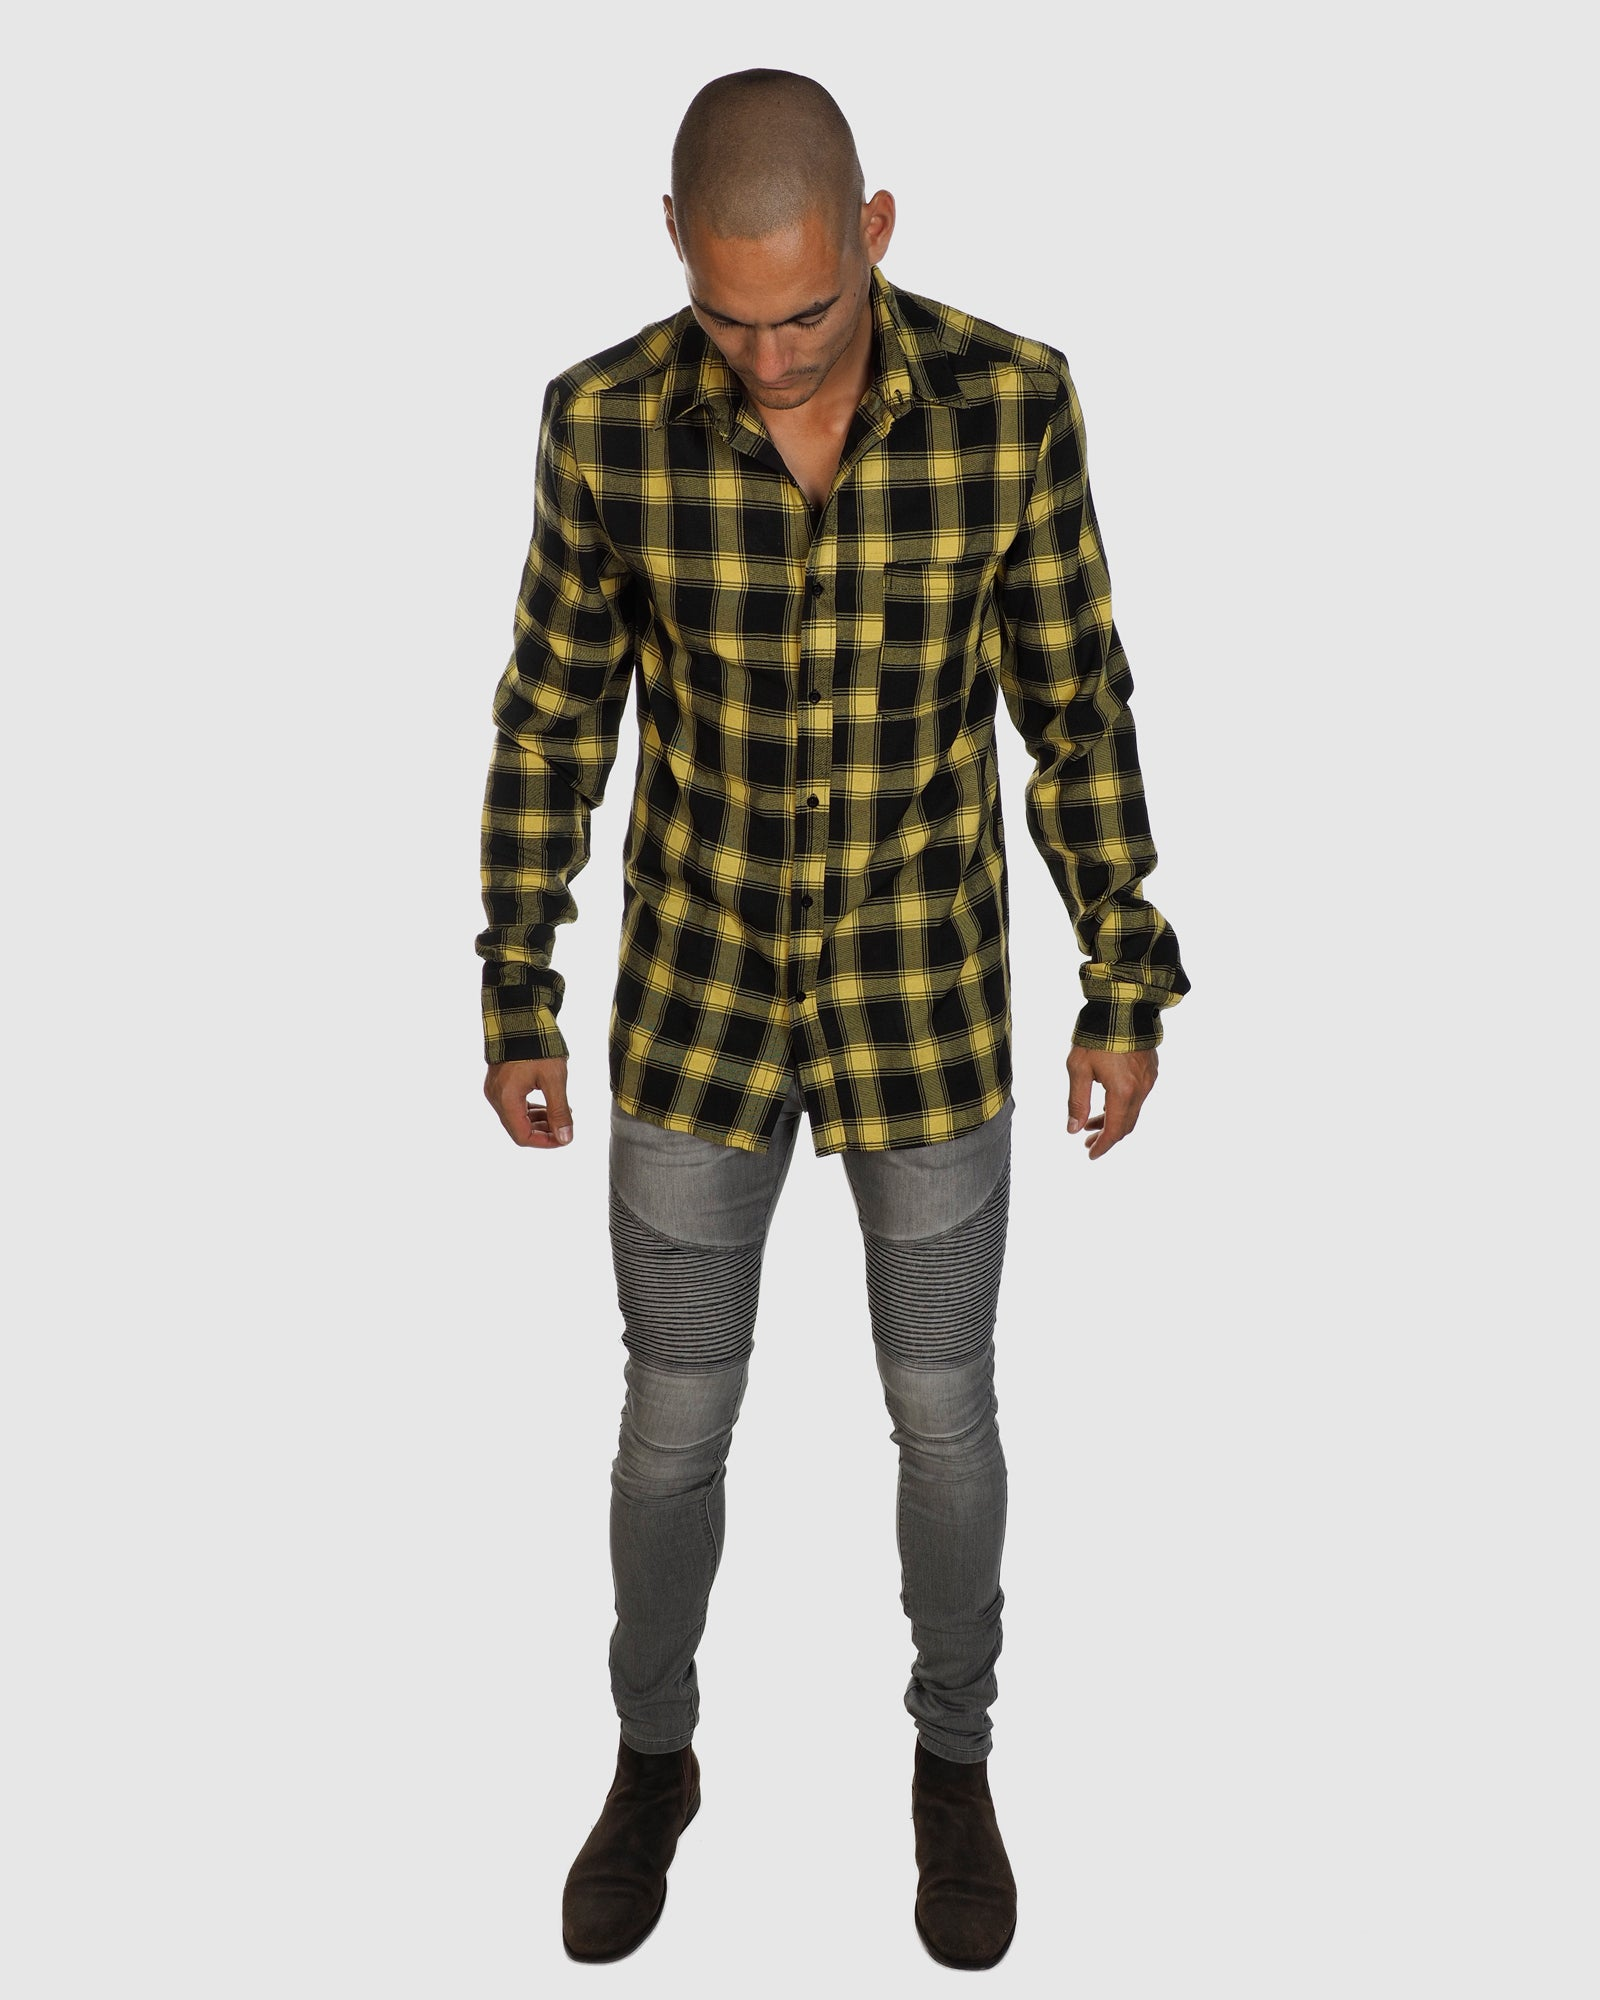 Aussie Flanny Shirt - Yellow/Black Check